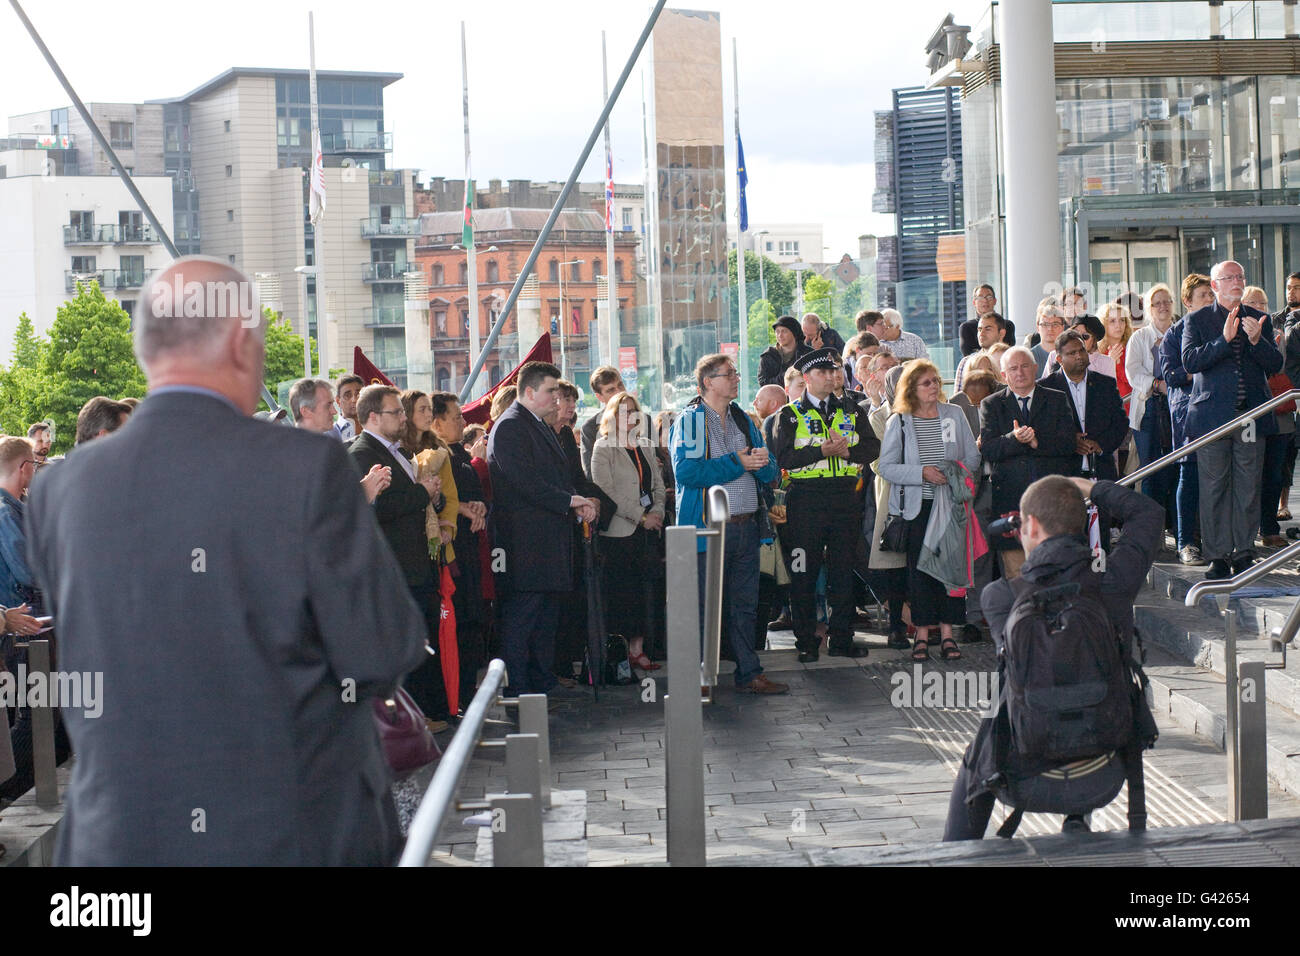 Cardiff, UK. 17th June, 2016. Vigil held outside the Senedd, National Assembly of Wales in memory of Jo Cox, Labour - Stock Image